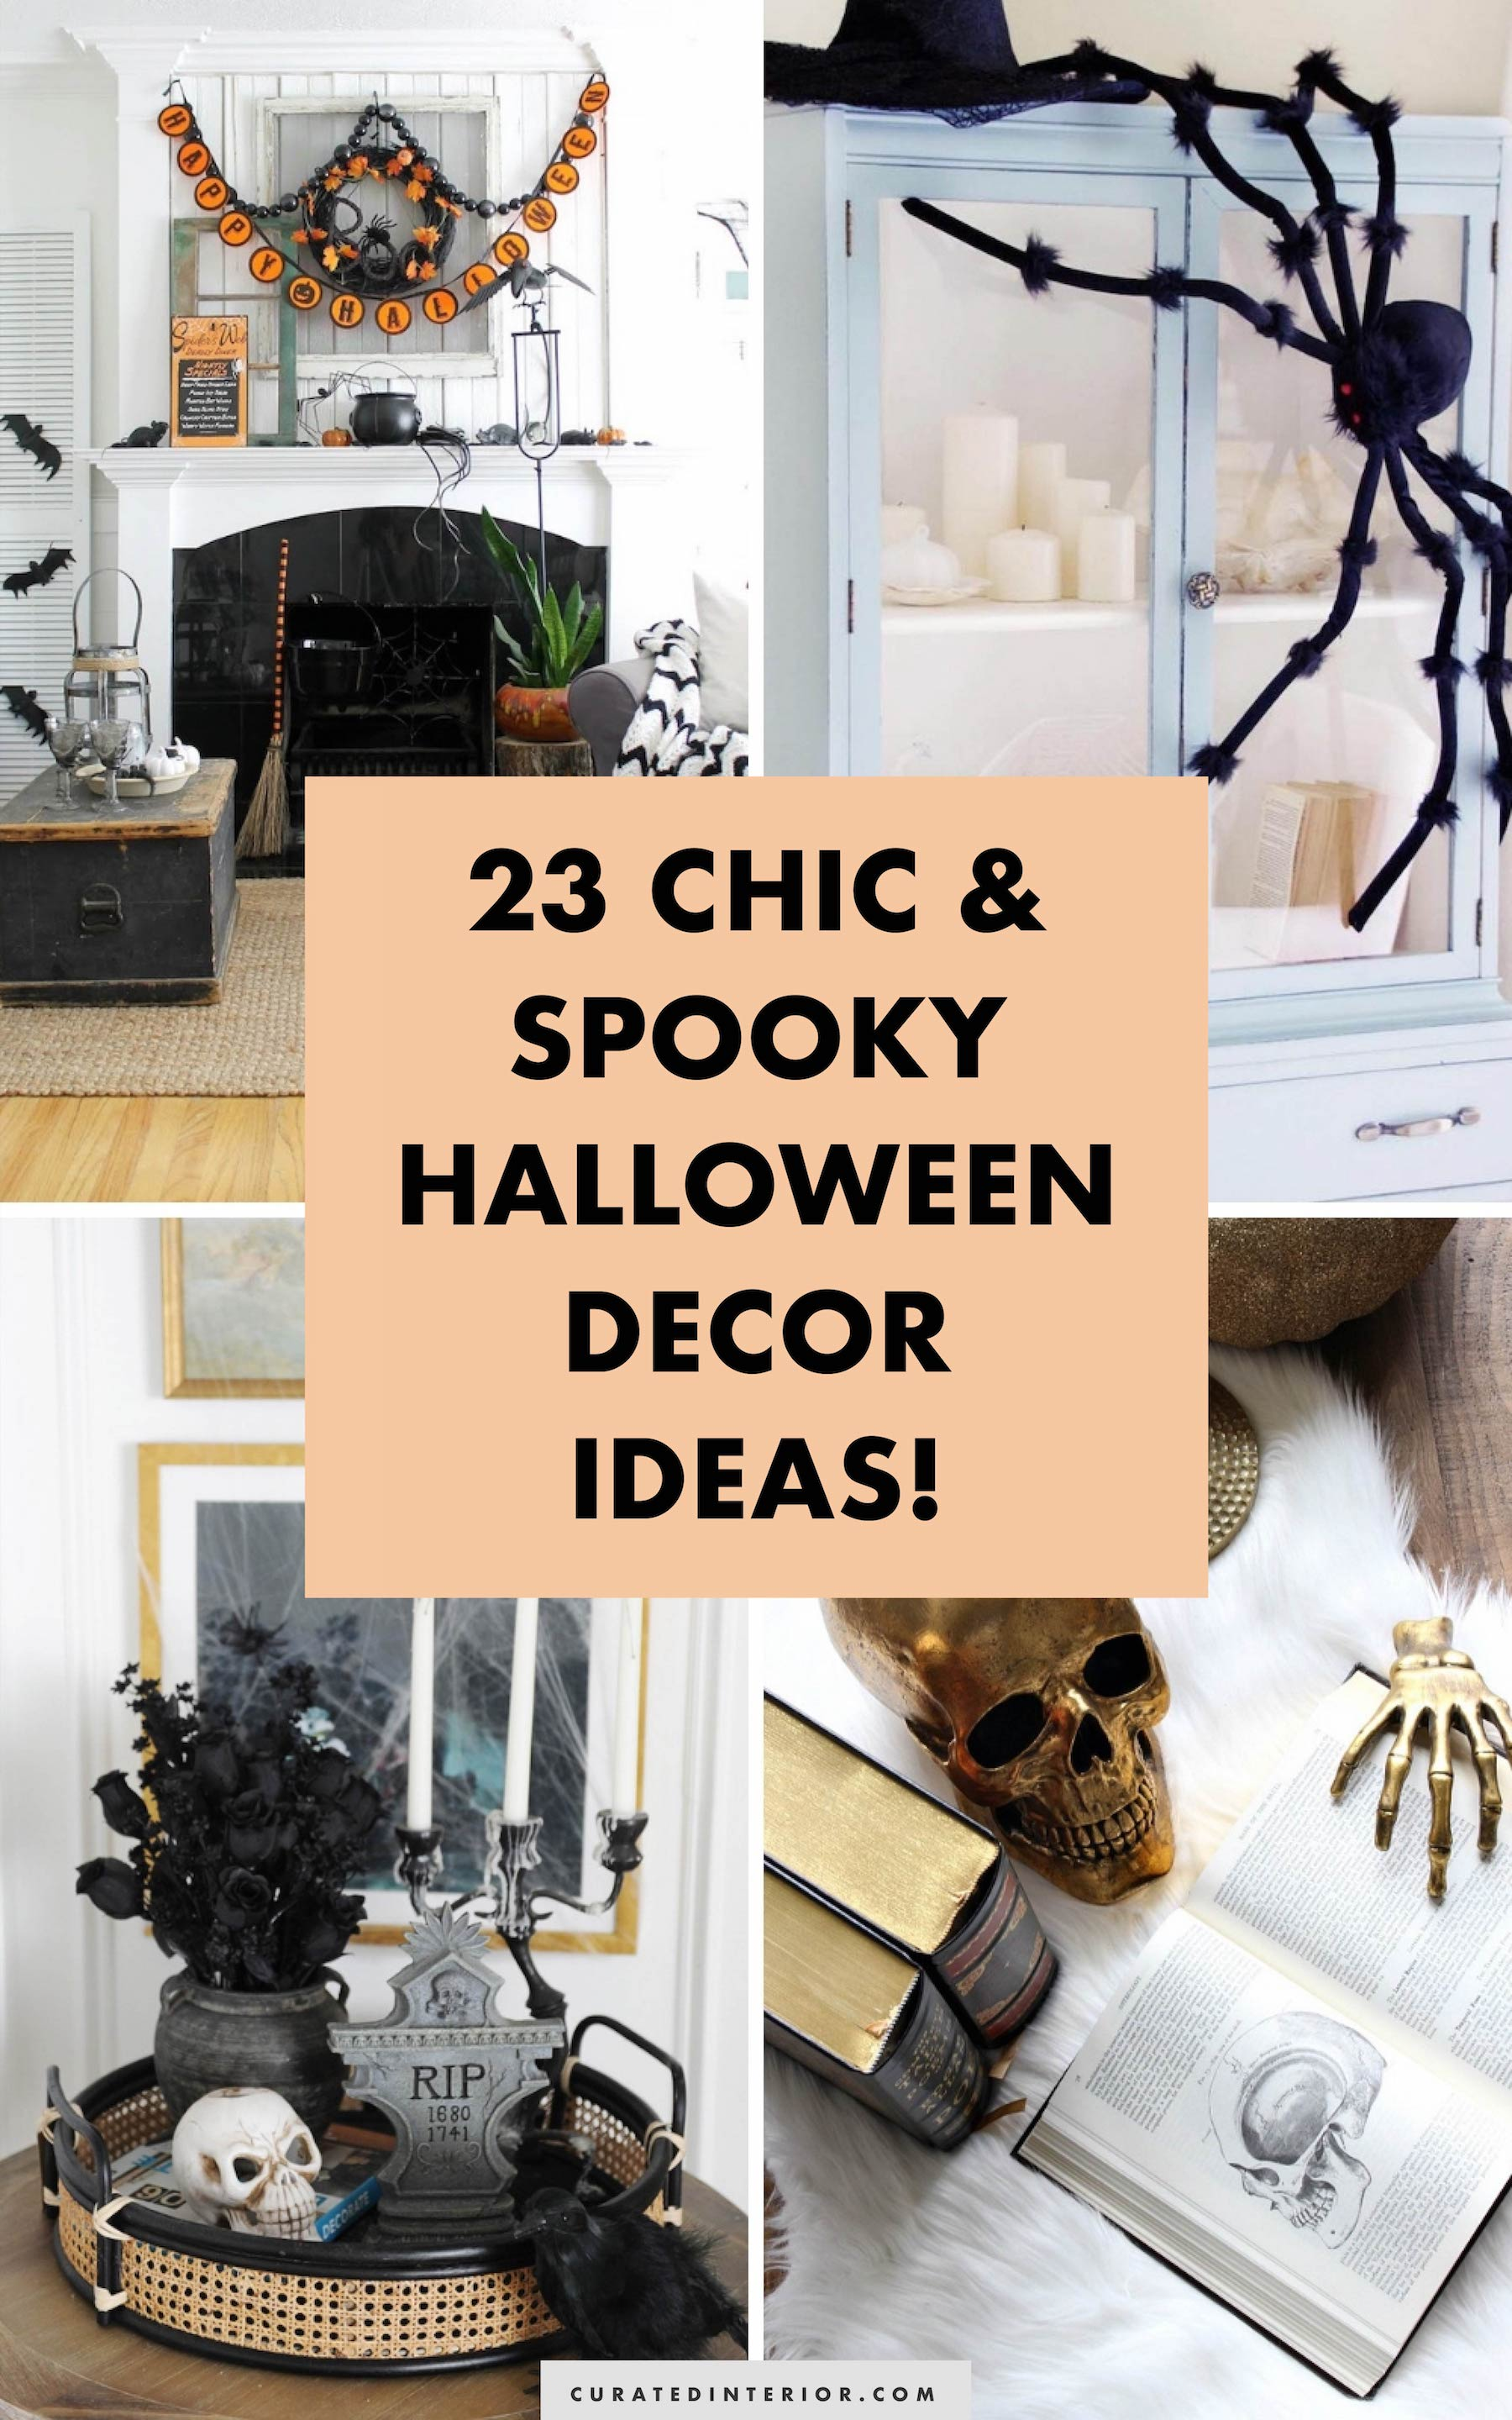 Halloween Chic 23 Chic Yet Spooky Halloween Decor Ideas For The Home